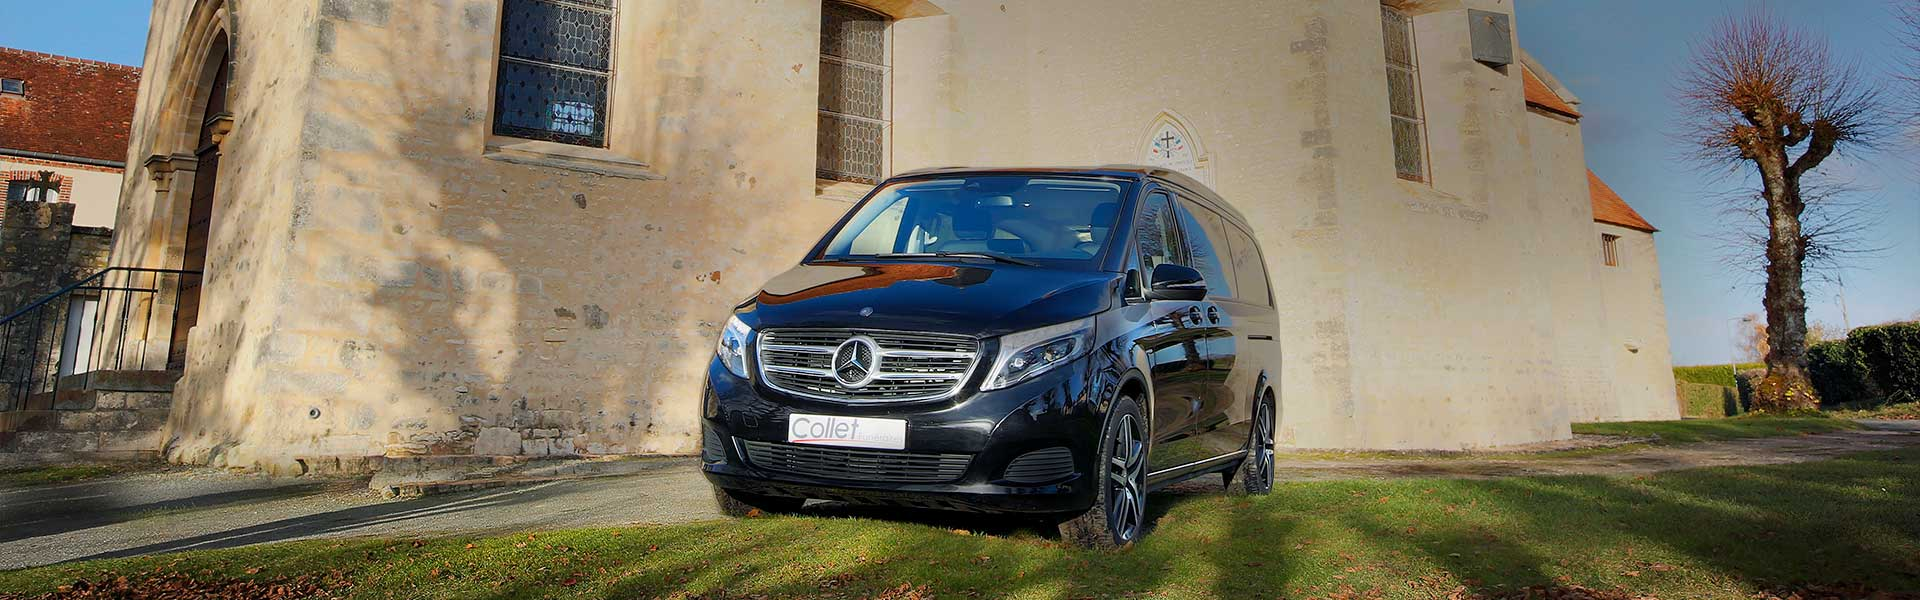 collet-funeraire-ambiance-mercedes-vito-iris2